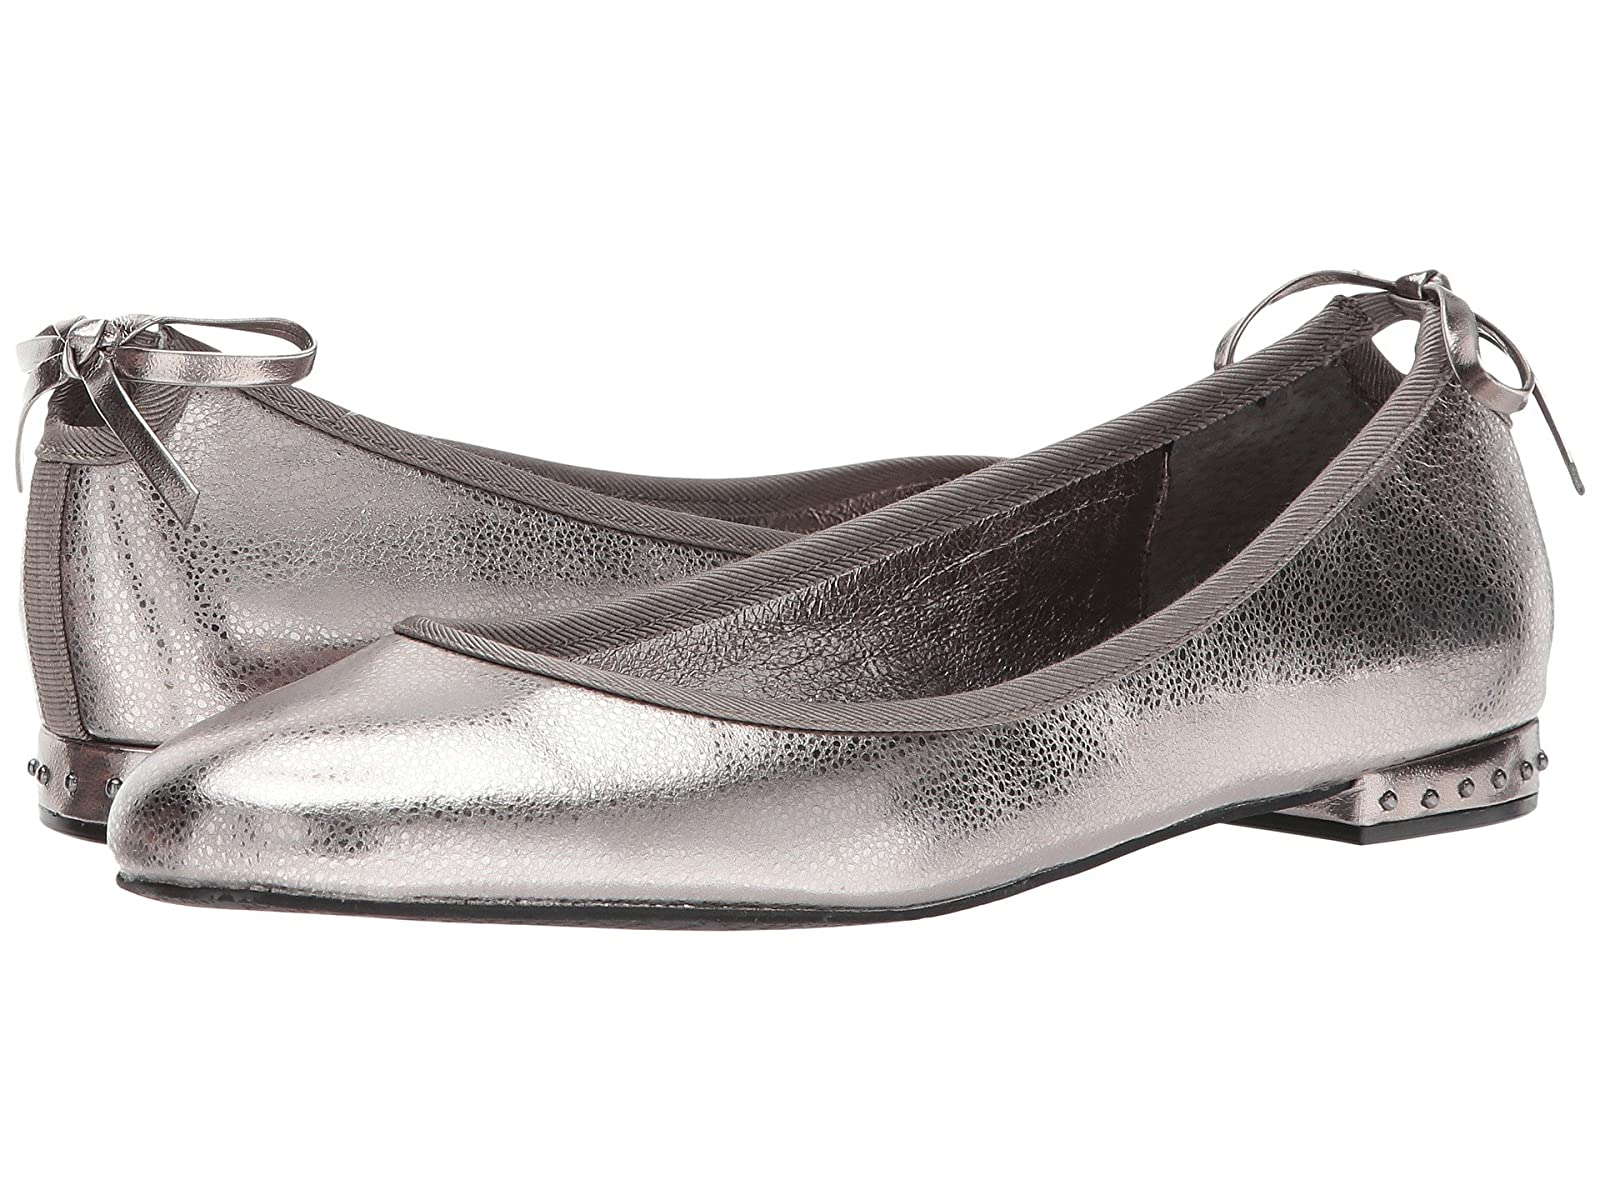 Adrianna Papell BrianneCheap and distinctive eye-catching shoes